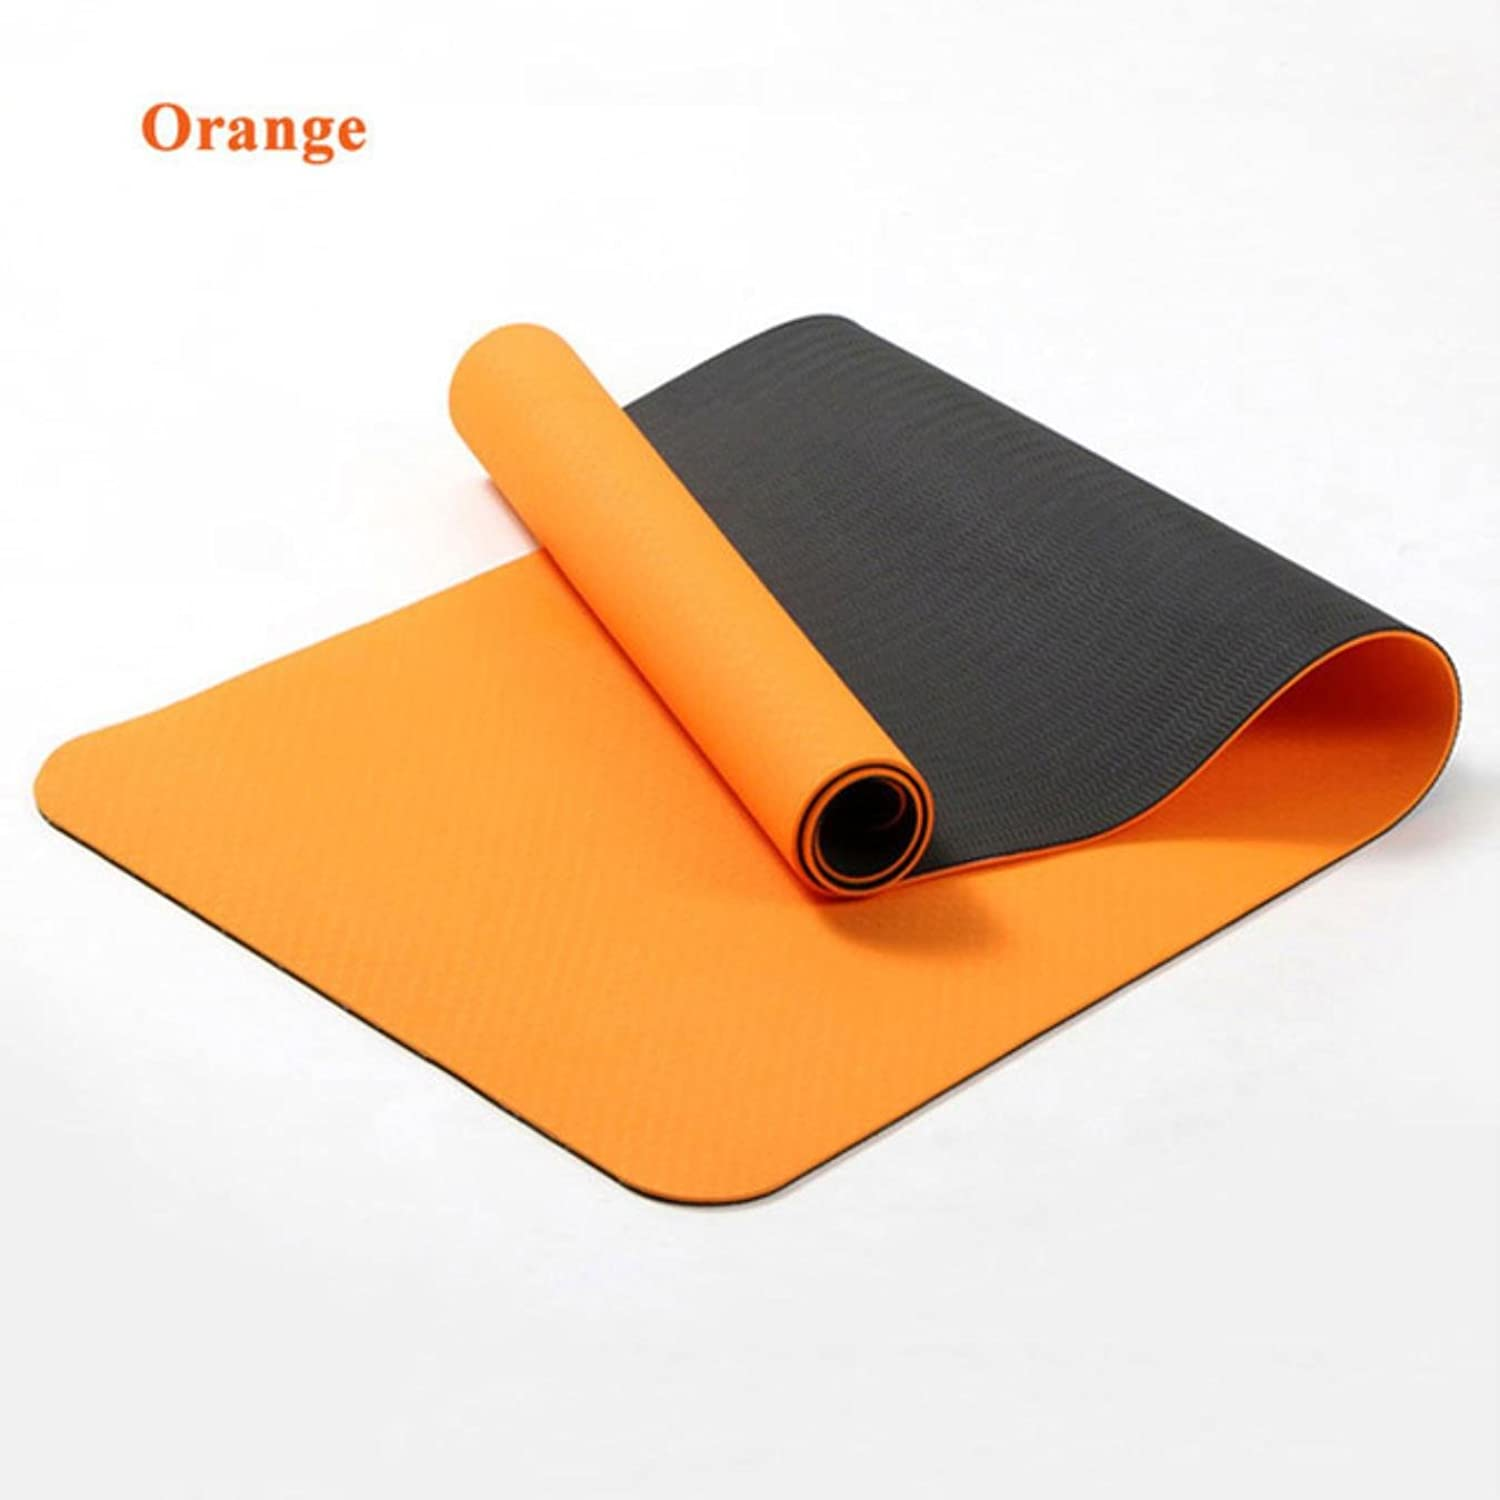 6mm Thick Yoga Mats NonSlip Pilates Mat Gym Cushion Equipment Sport Pad